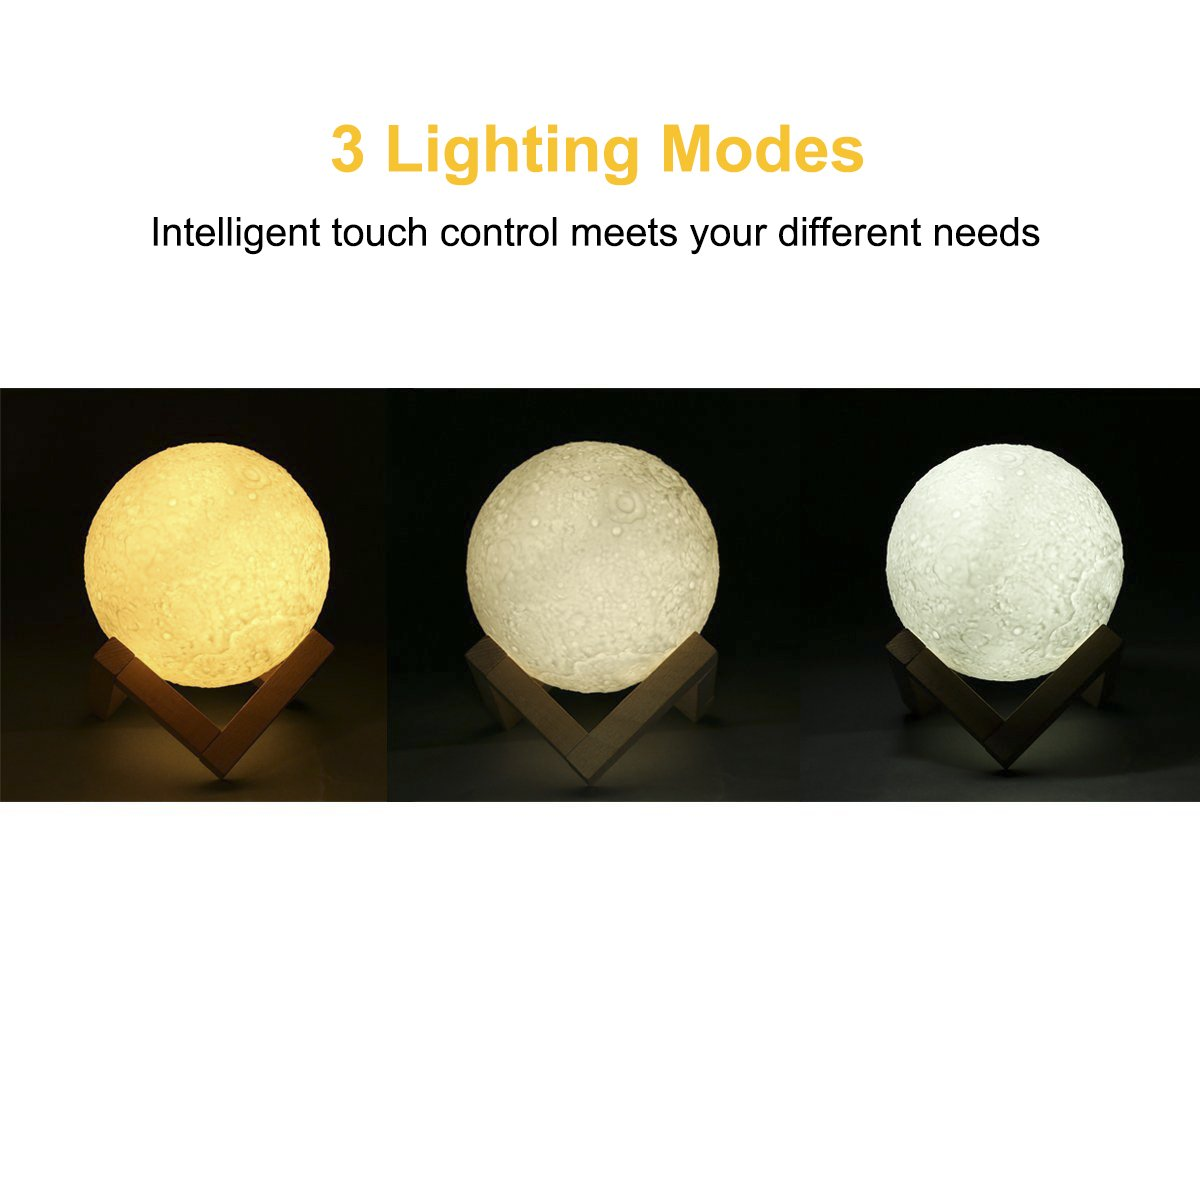 ProGreen LED Moon Night Light, 3D Printing Moon Lights, LED Moonlight Desk Bedside Lamp, Adjustable Brightness and Color, Touch Control, USB Rechargeable Hanging Lighting with Stand & String